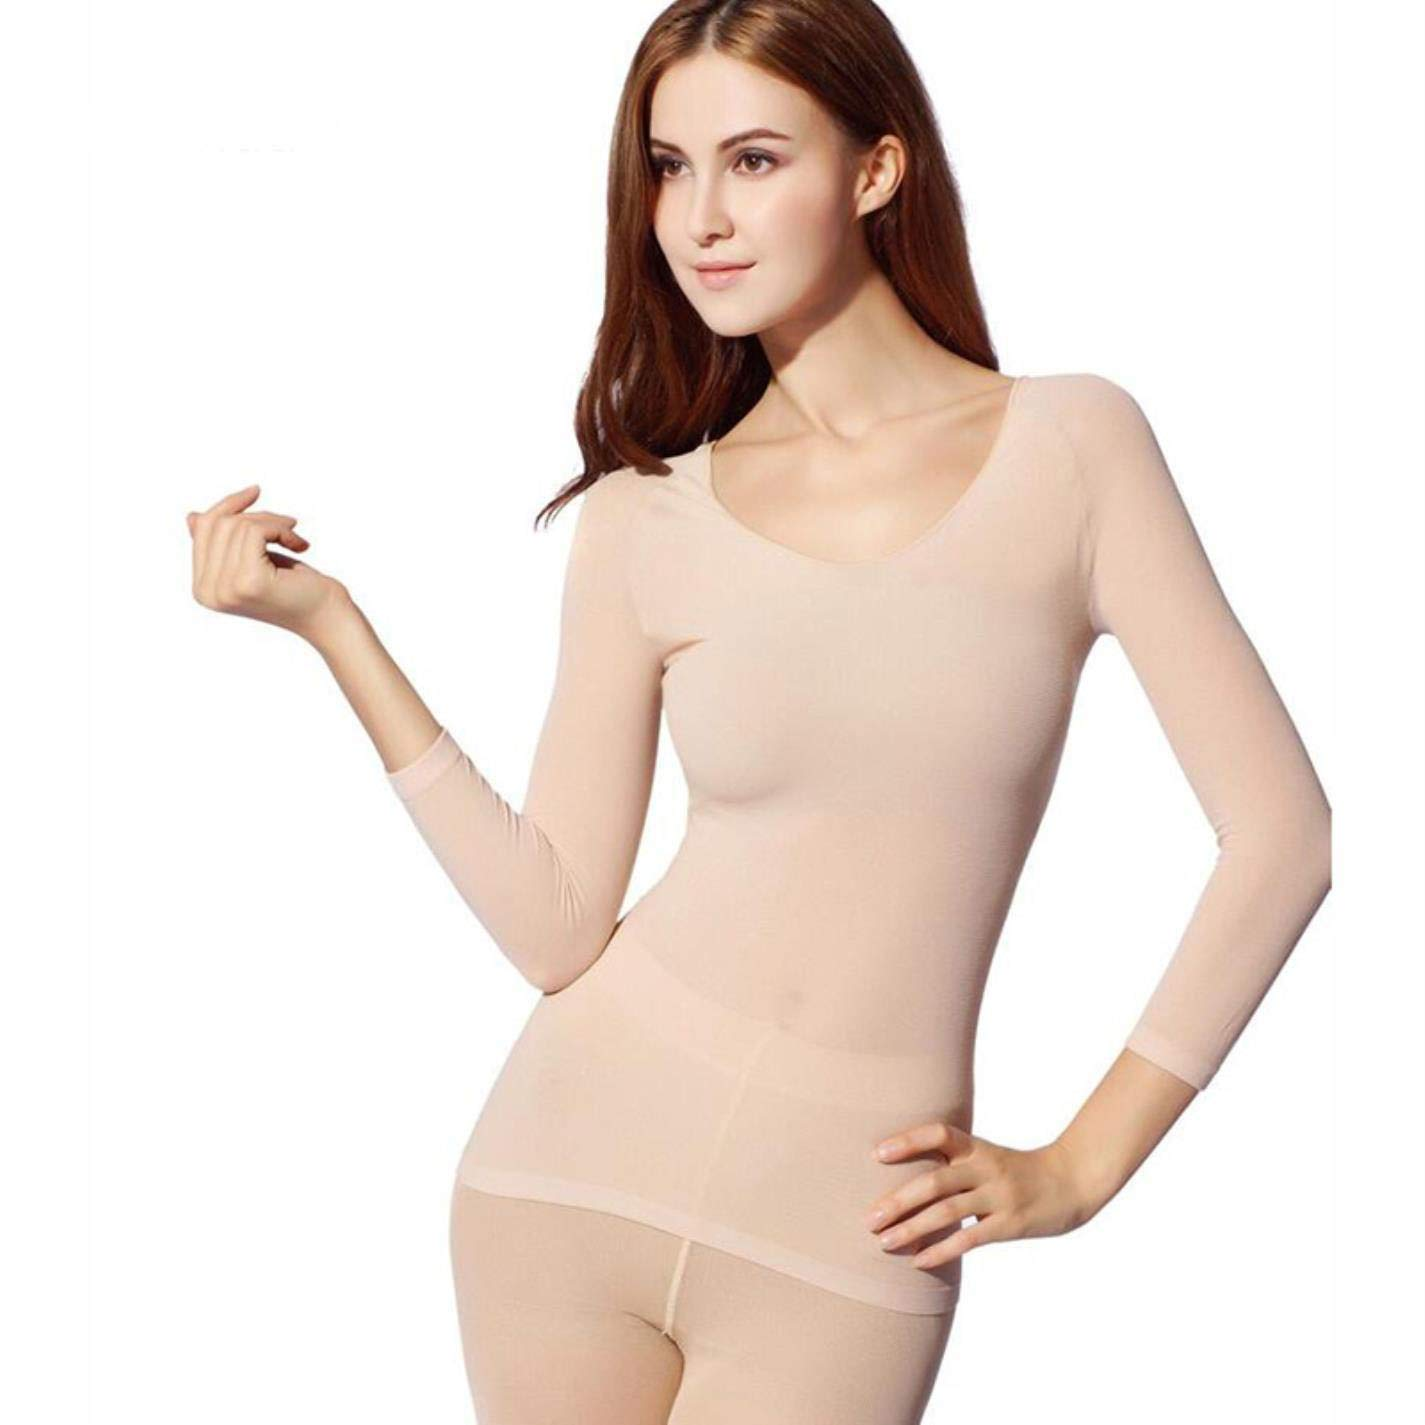 Warm-Mm Women 37 Degree Constant Temperature Thermal Underwear Ultrathin Elastic at Amazon Womens Clothing store: